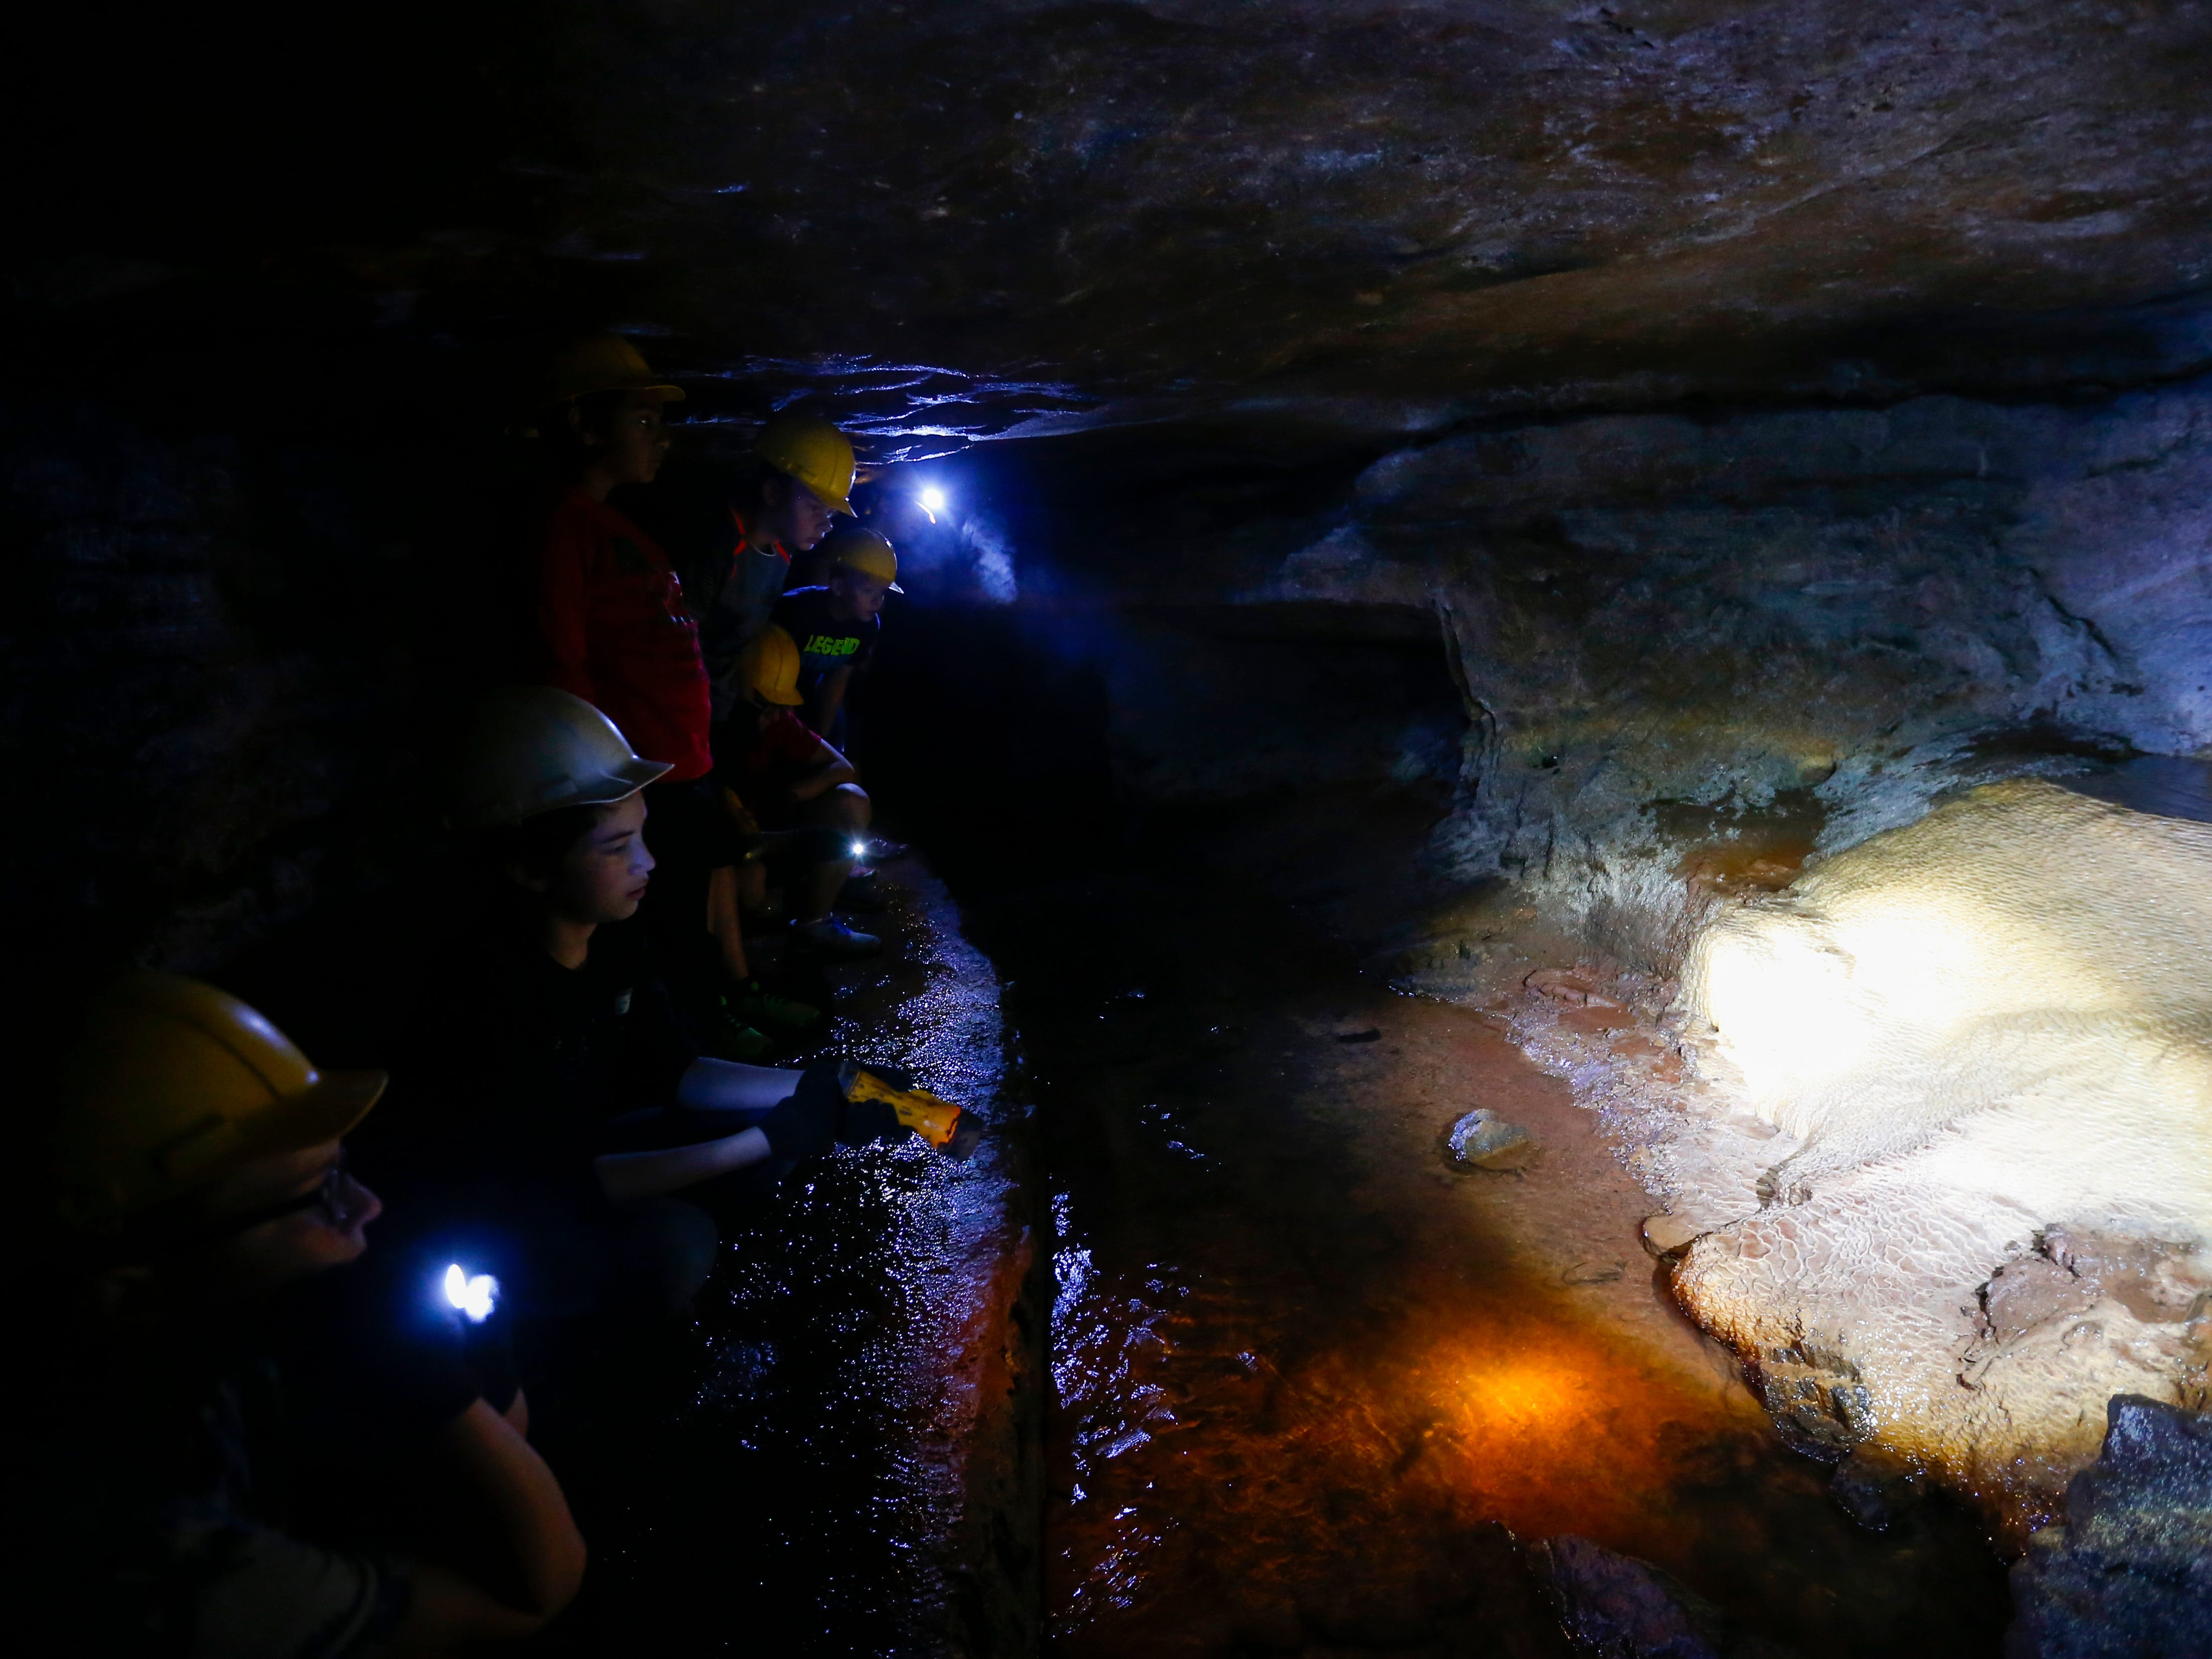 Using flashlights to illuminate their way, middle school students taking part in Springfield Public Schools' summer program, Explore, take a tour of Giboney Cave in Doling Park on Wednesday, July 19, 2017.